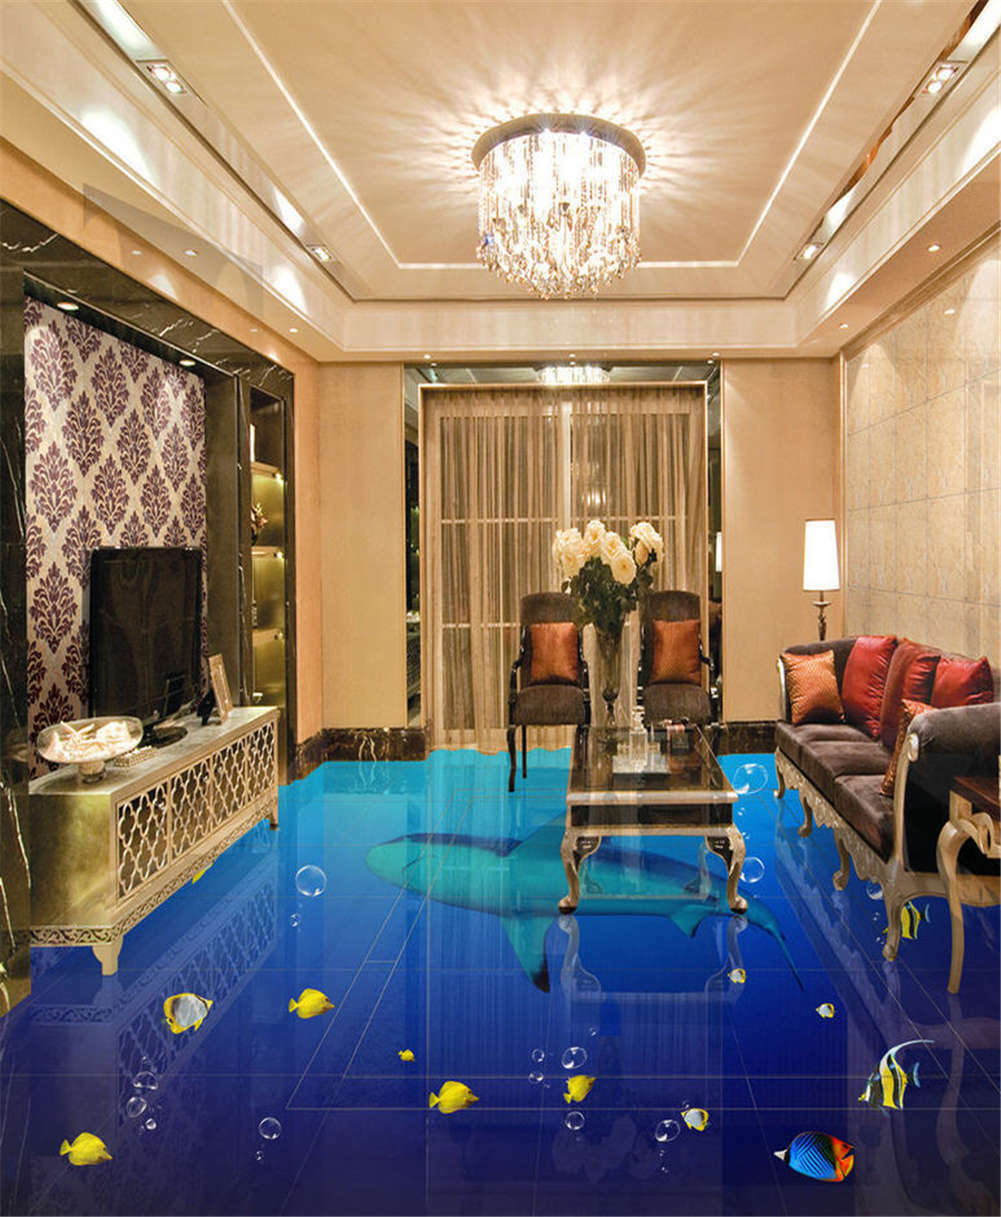 Deep Quiet Undersea3D Floor Mural Photo Flooring Wallpaper Home Print Decoration